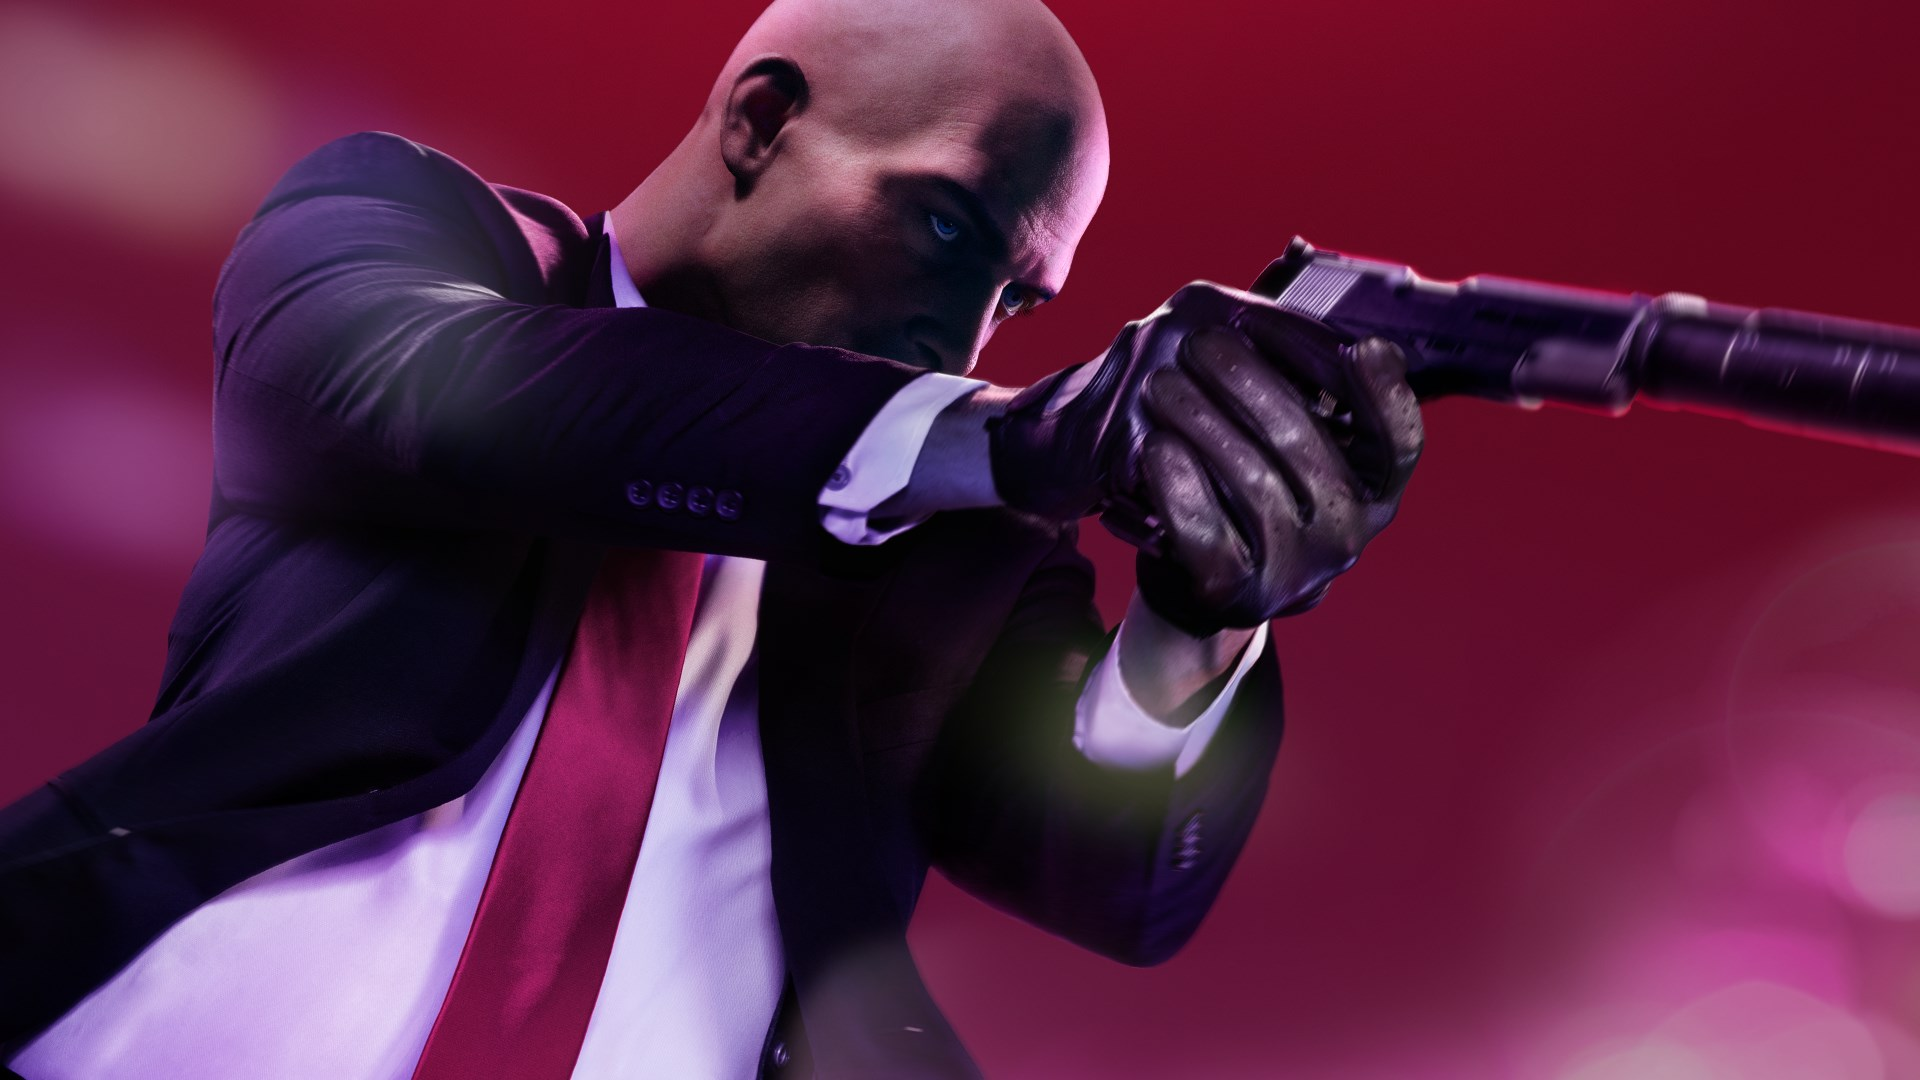 HITMAN 3 Access Pass: HITMAN 2 Expansion